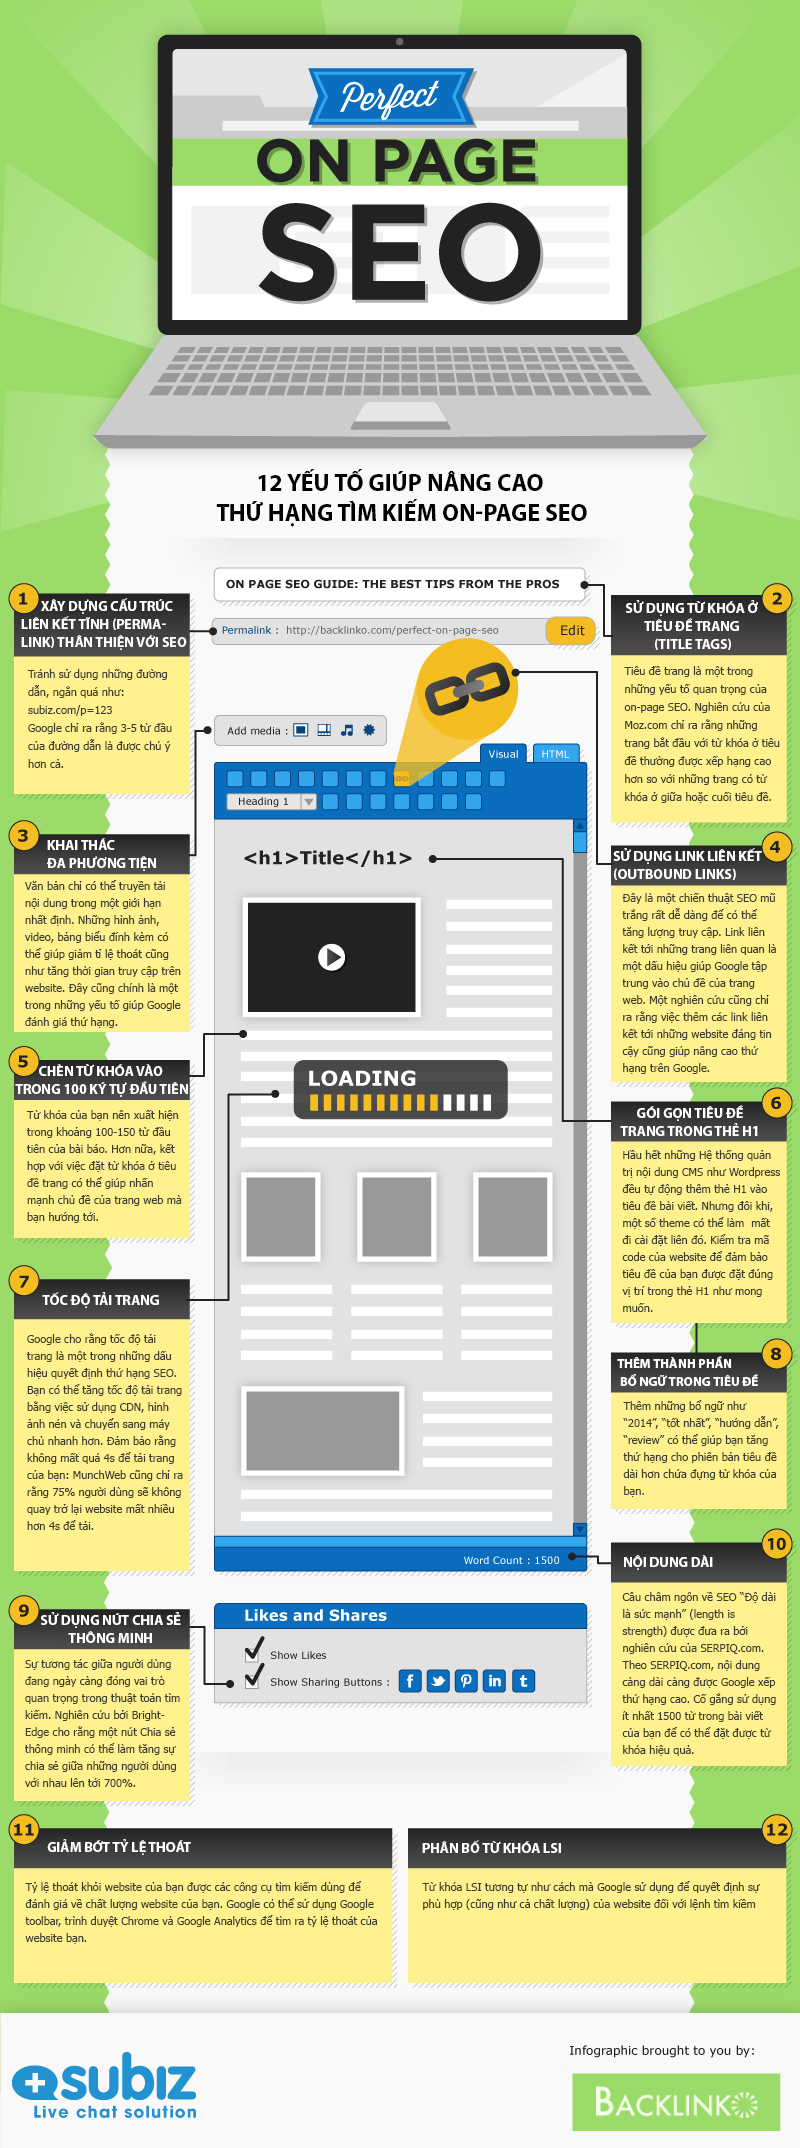 Basic-On-Page-SEO-Infographic